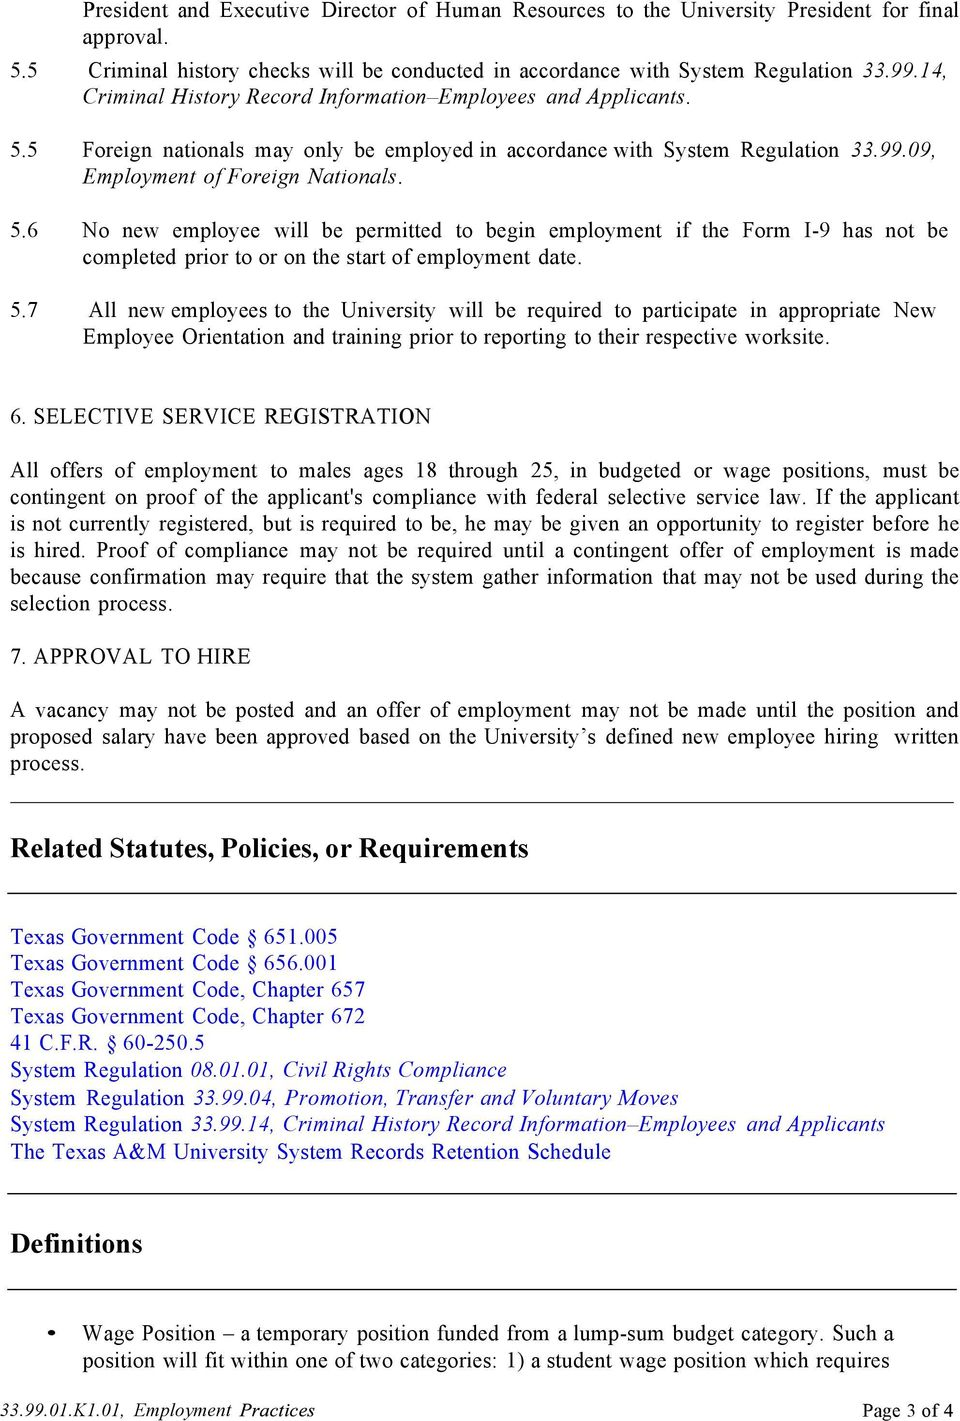 5 Foreign nationals may only be employed in accordance with System Regulation 33.99.09, Employment of Foreign Nationals. 5.